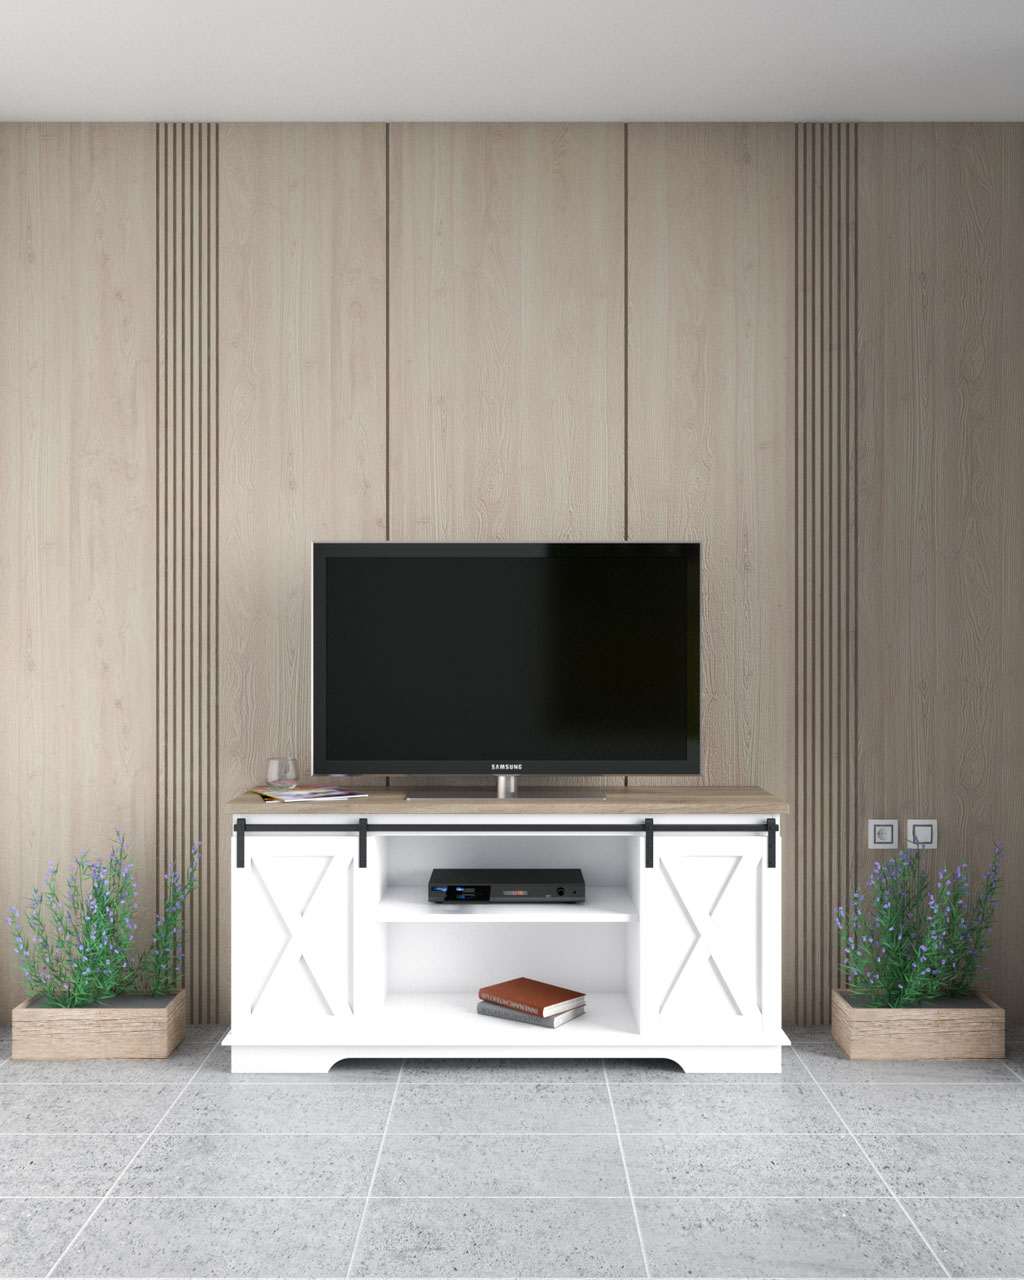 Modern style wooden panel accent wall ideas